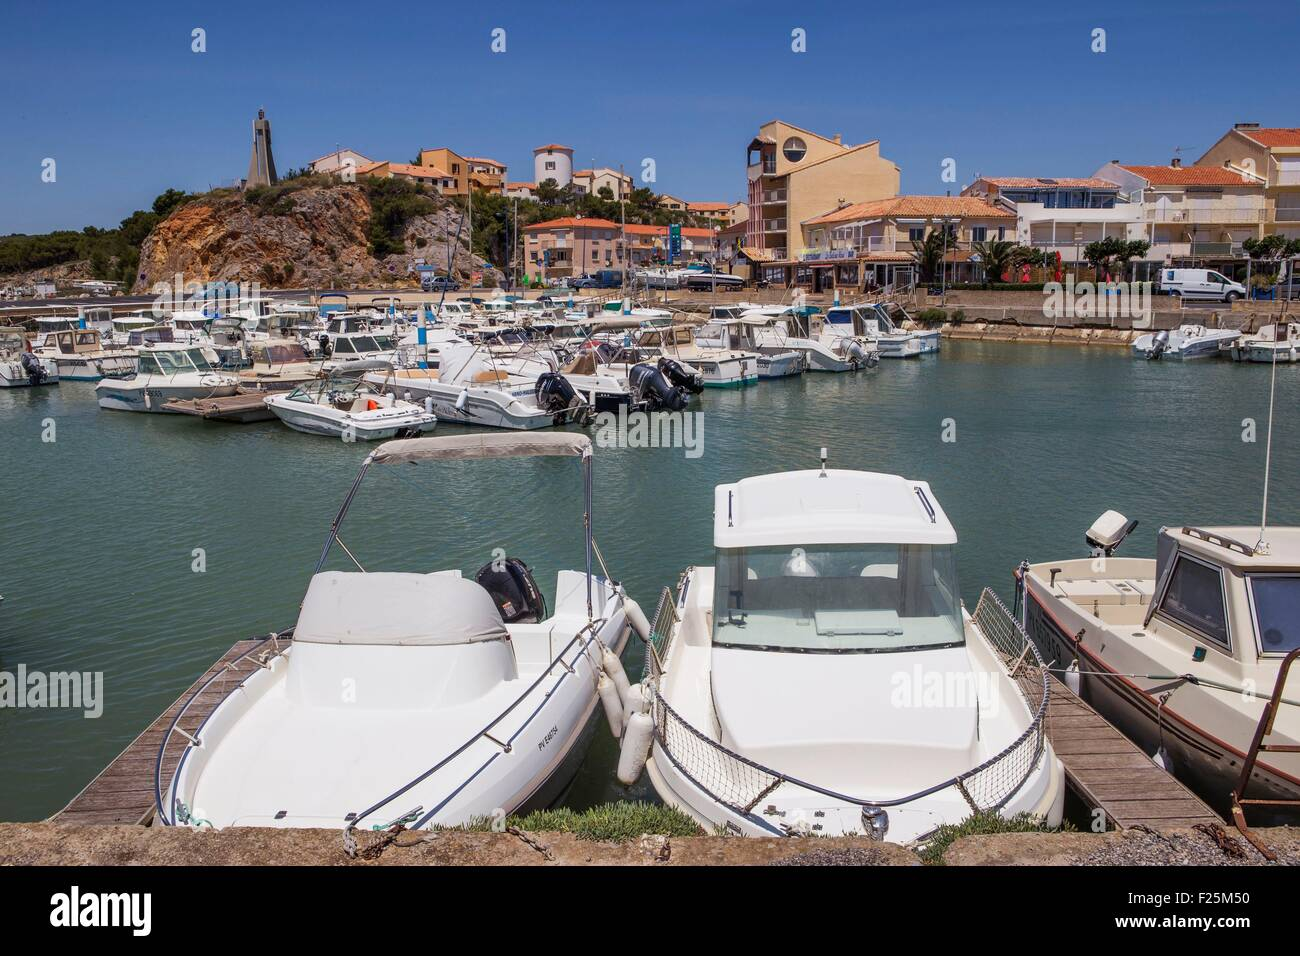 at narbonne plage stock photos at narbonne plage stock images alamy. Black Bedroom Furniture Sets. Home Design Ideas